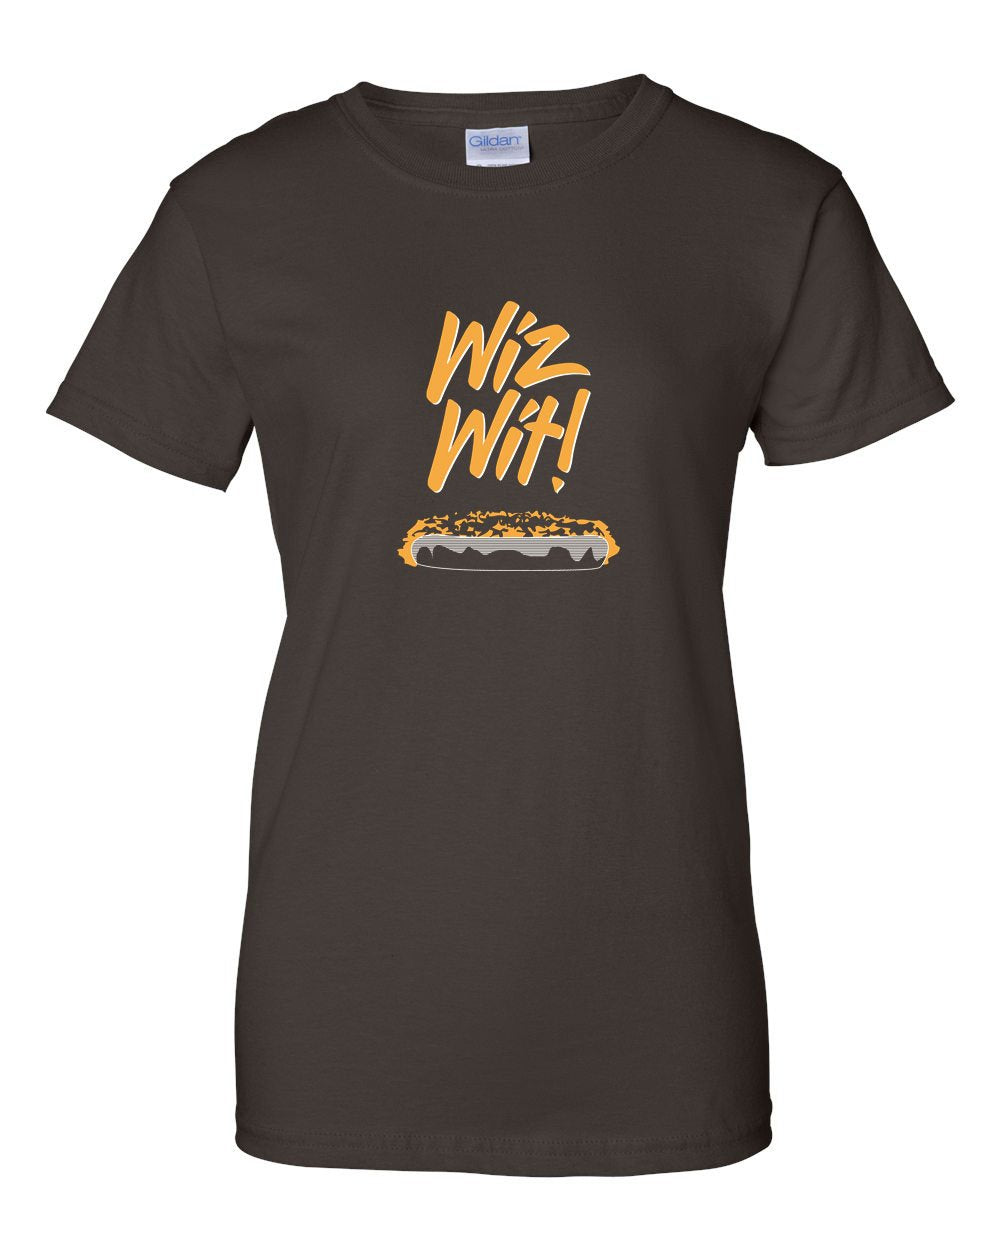 Wiz Wit LADIES Missy-Fit T-Shirt